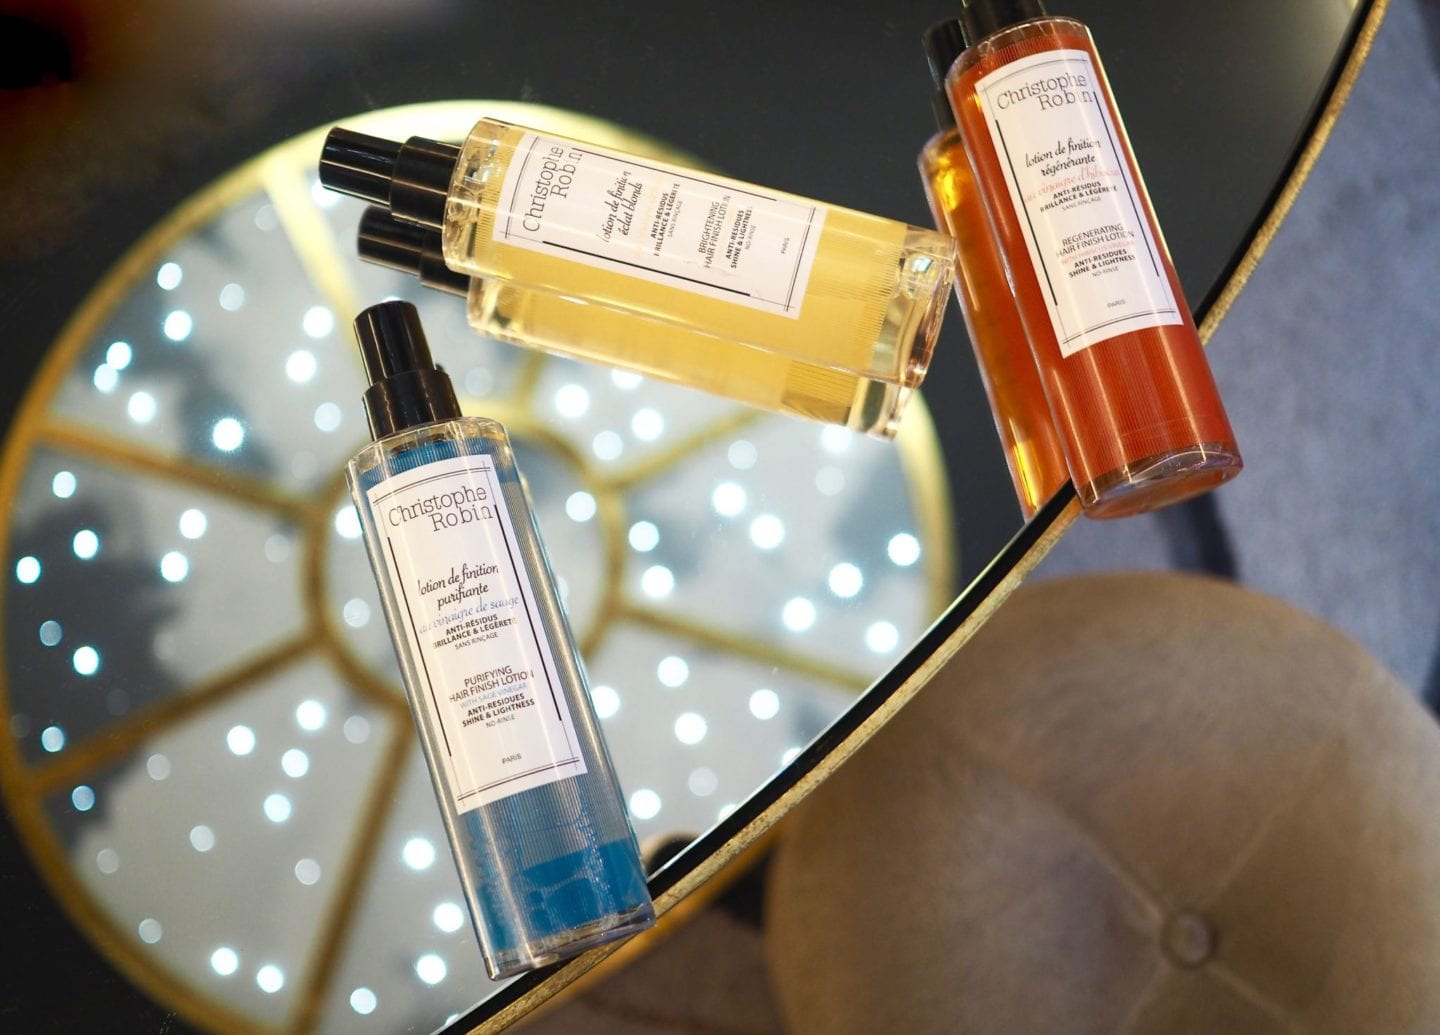 christophe-robin-hair-care-products-paris